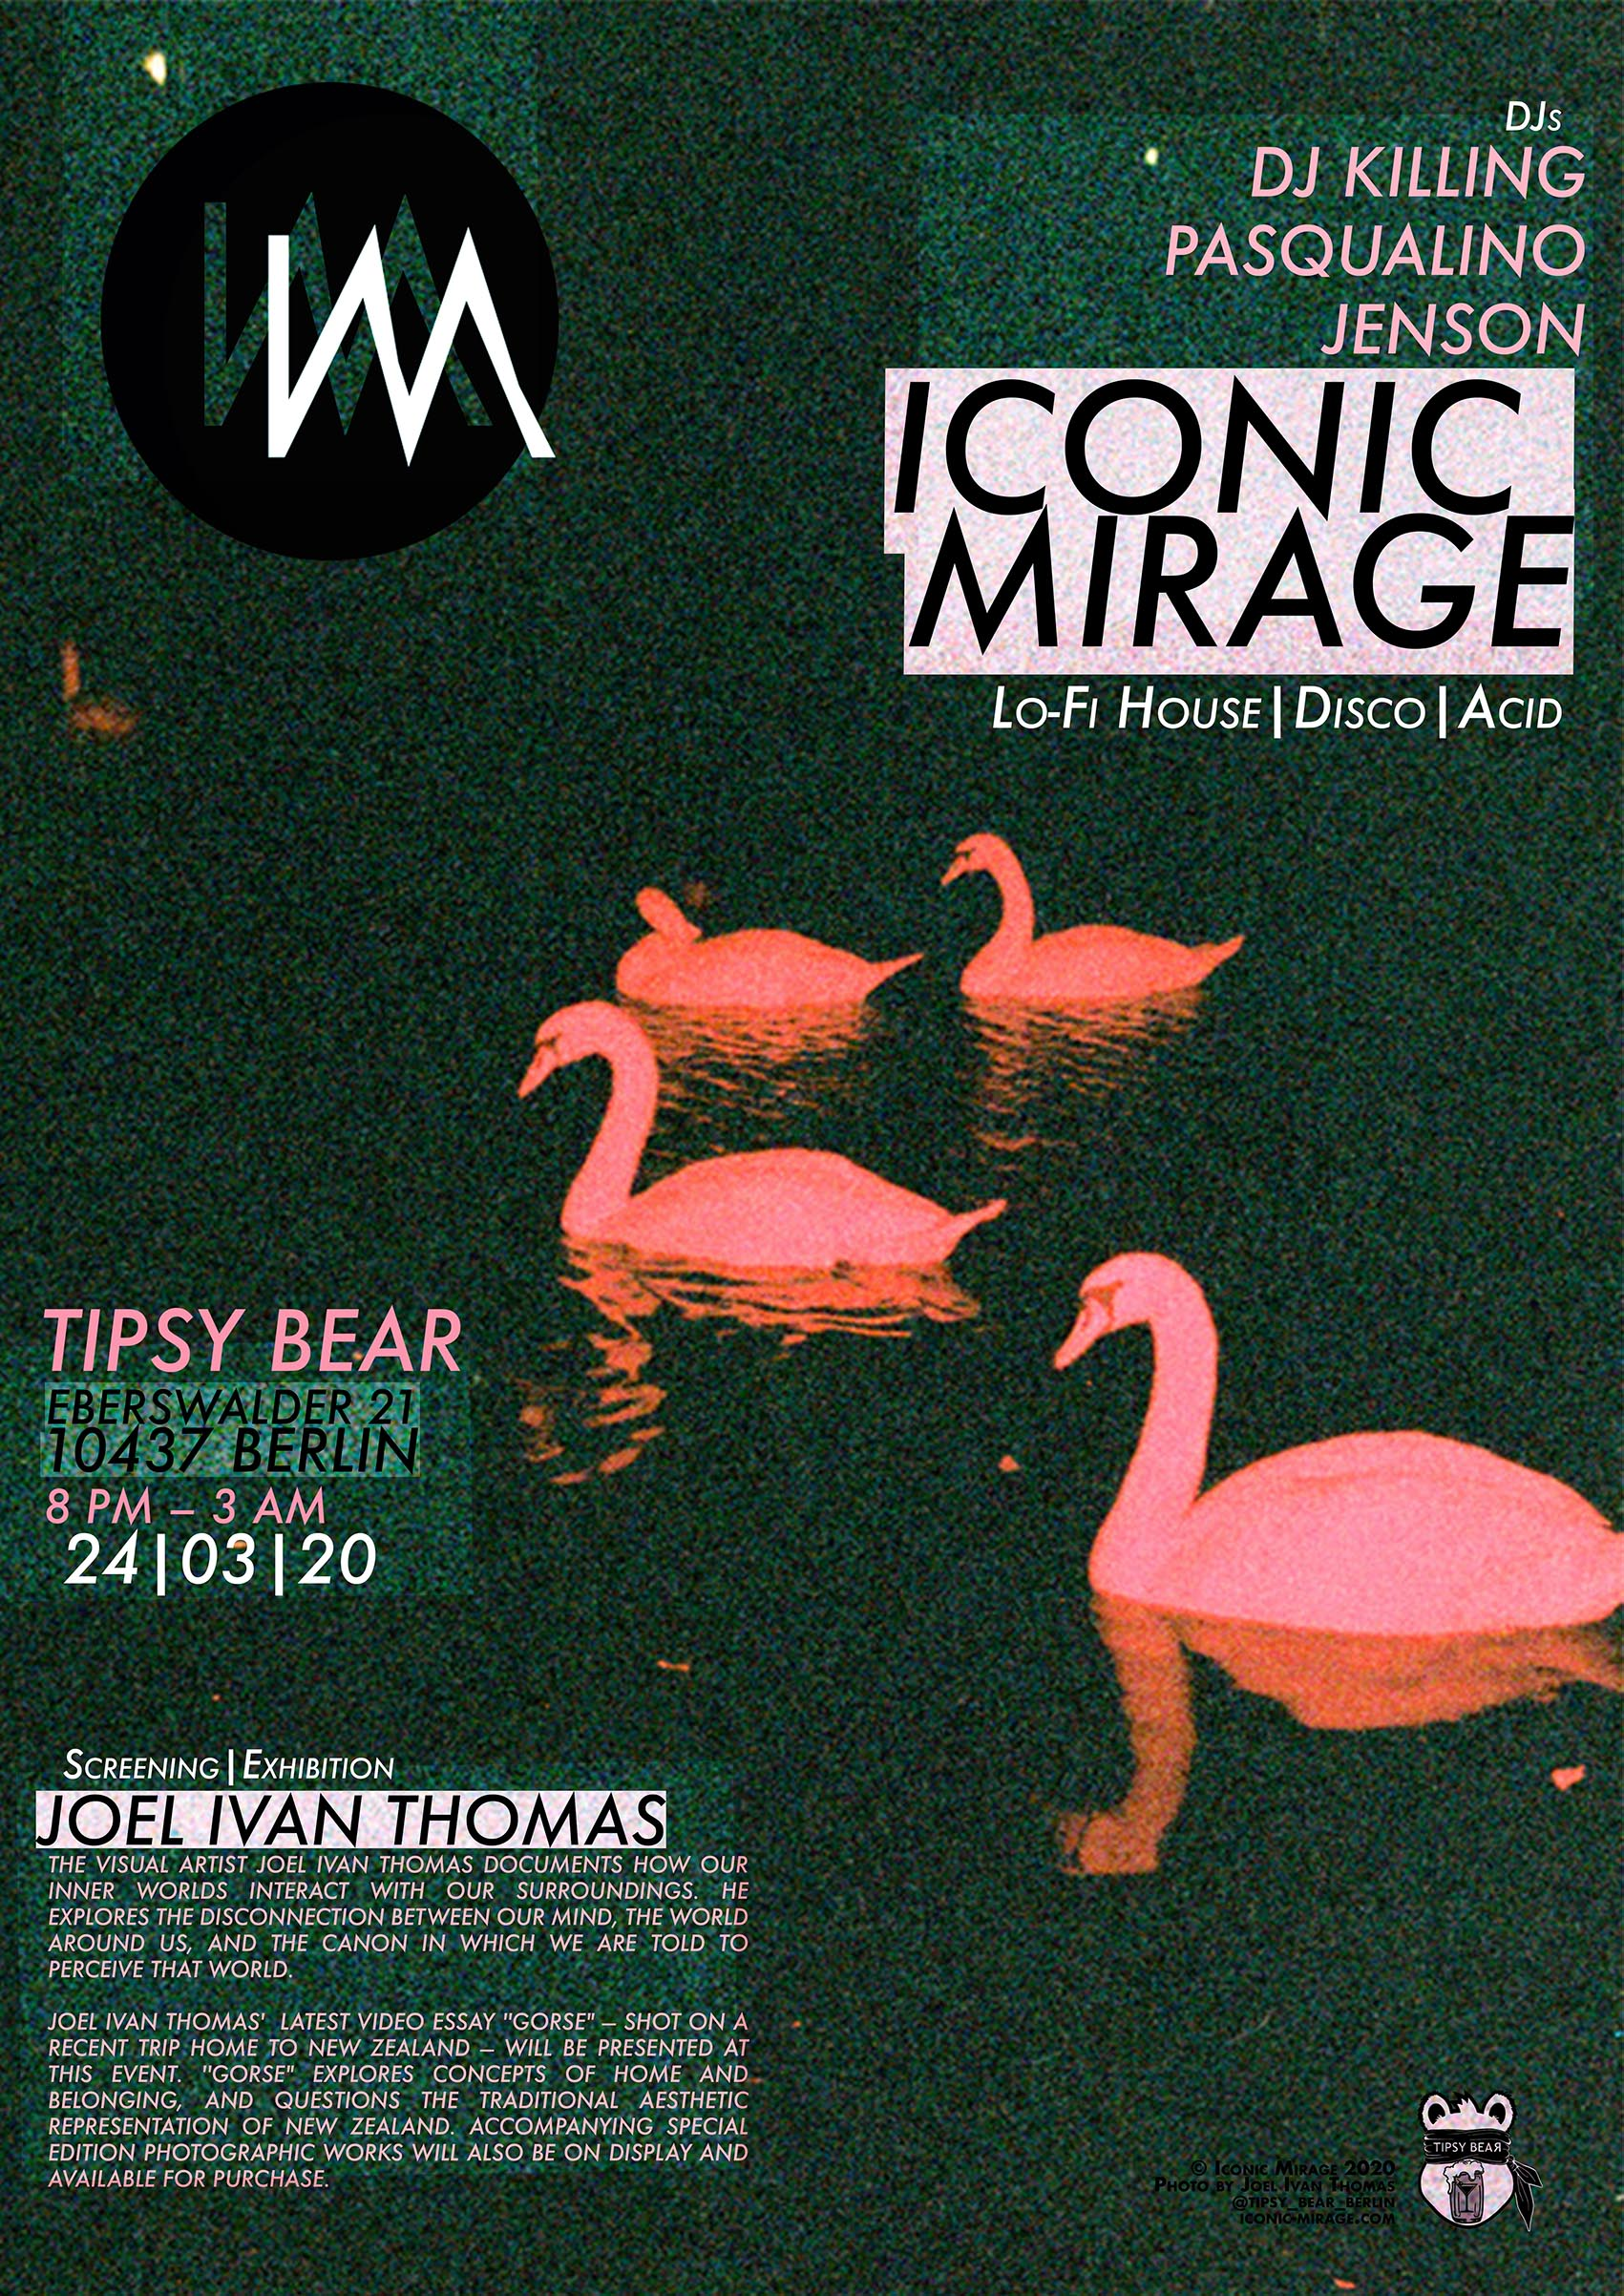 Iconic Mirage Tipsy Bear 24.03.2020-poster